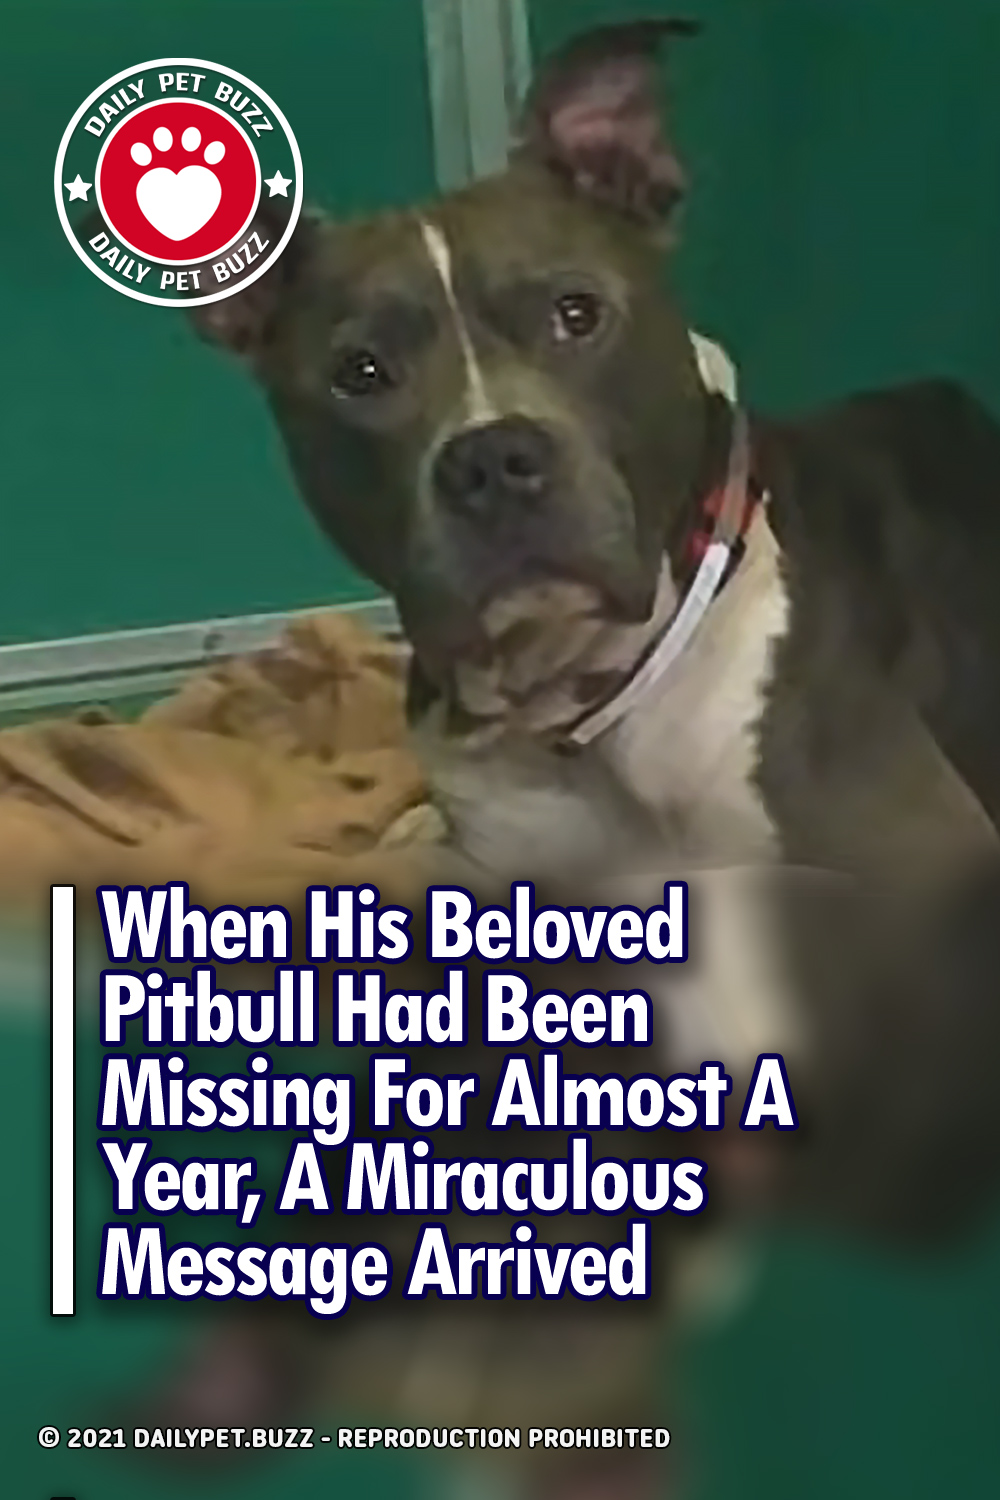 When His Beloved Pitbull Had Been Missing For Almost A Year, A Miraculous Message Arrived